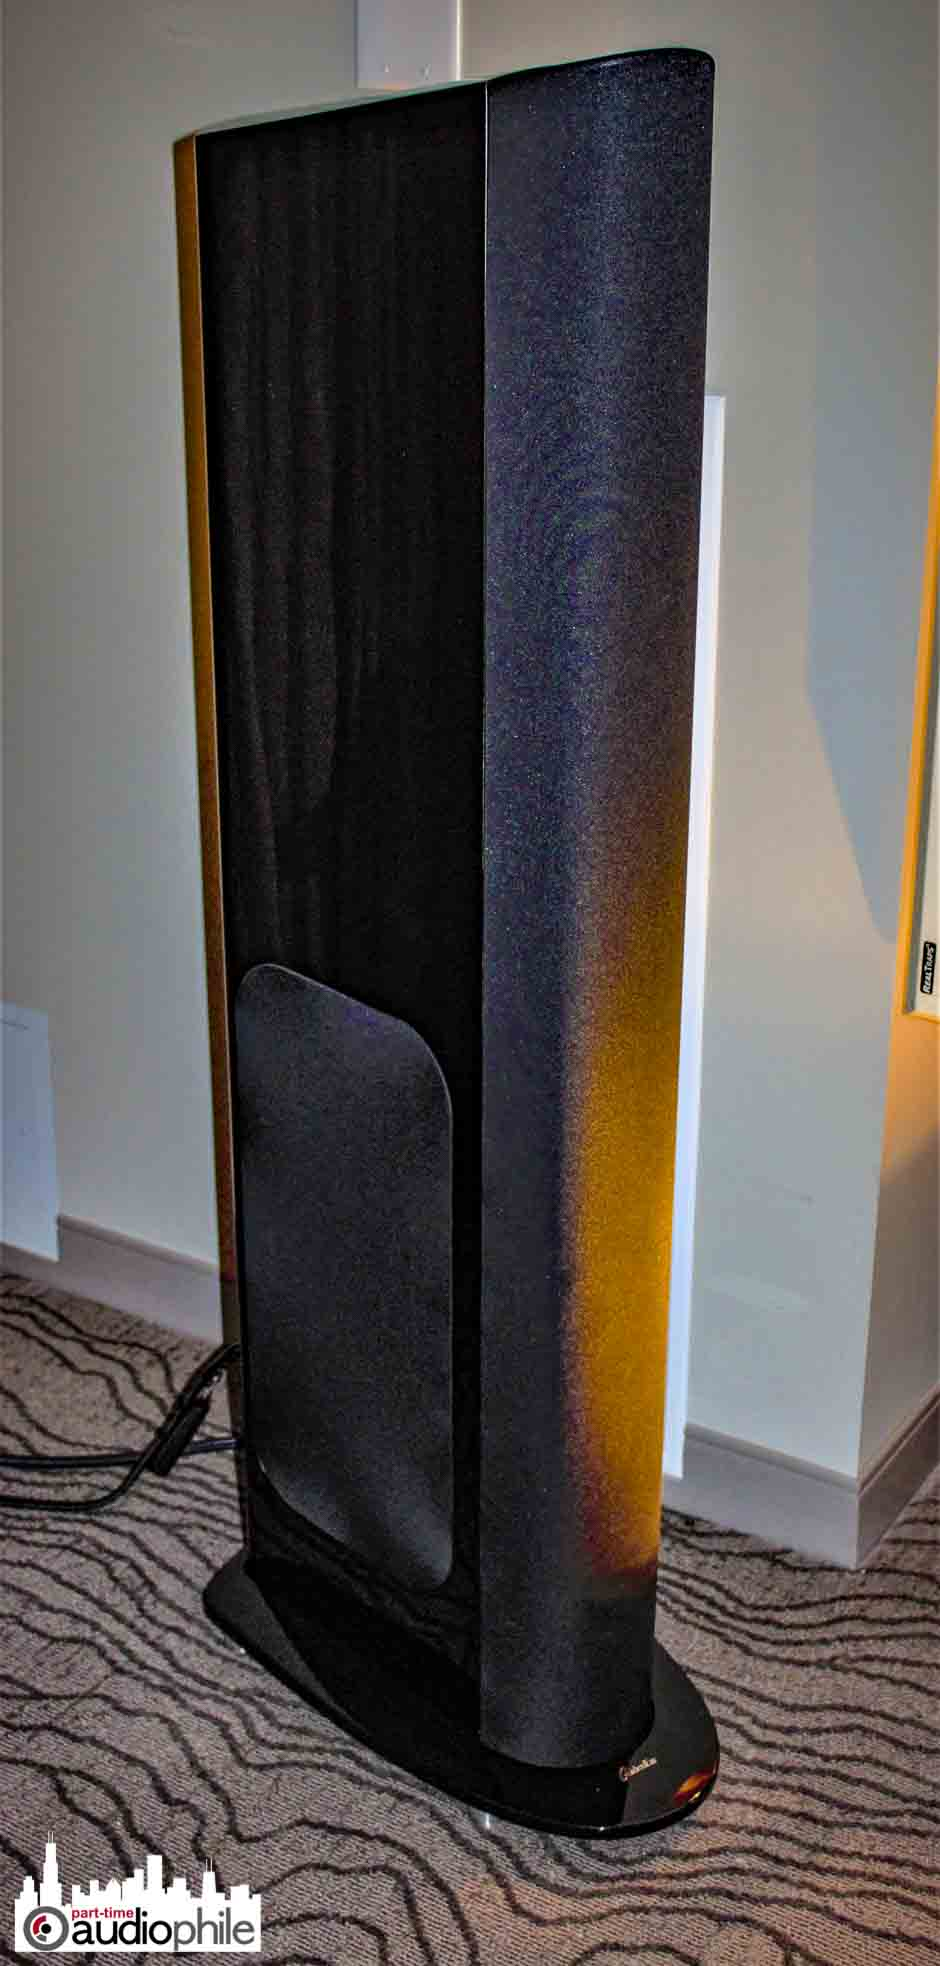 RMAF 2018: ListenUp, GoldenEar, Hegel, Audioquest and Shut